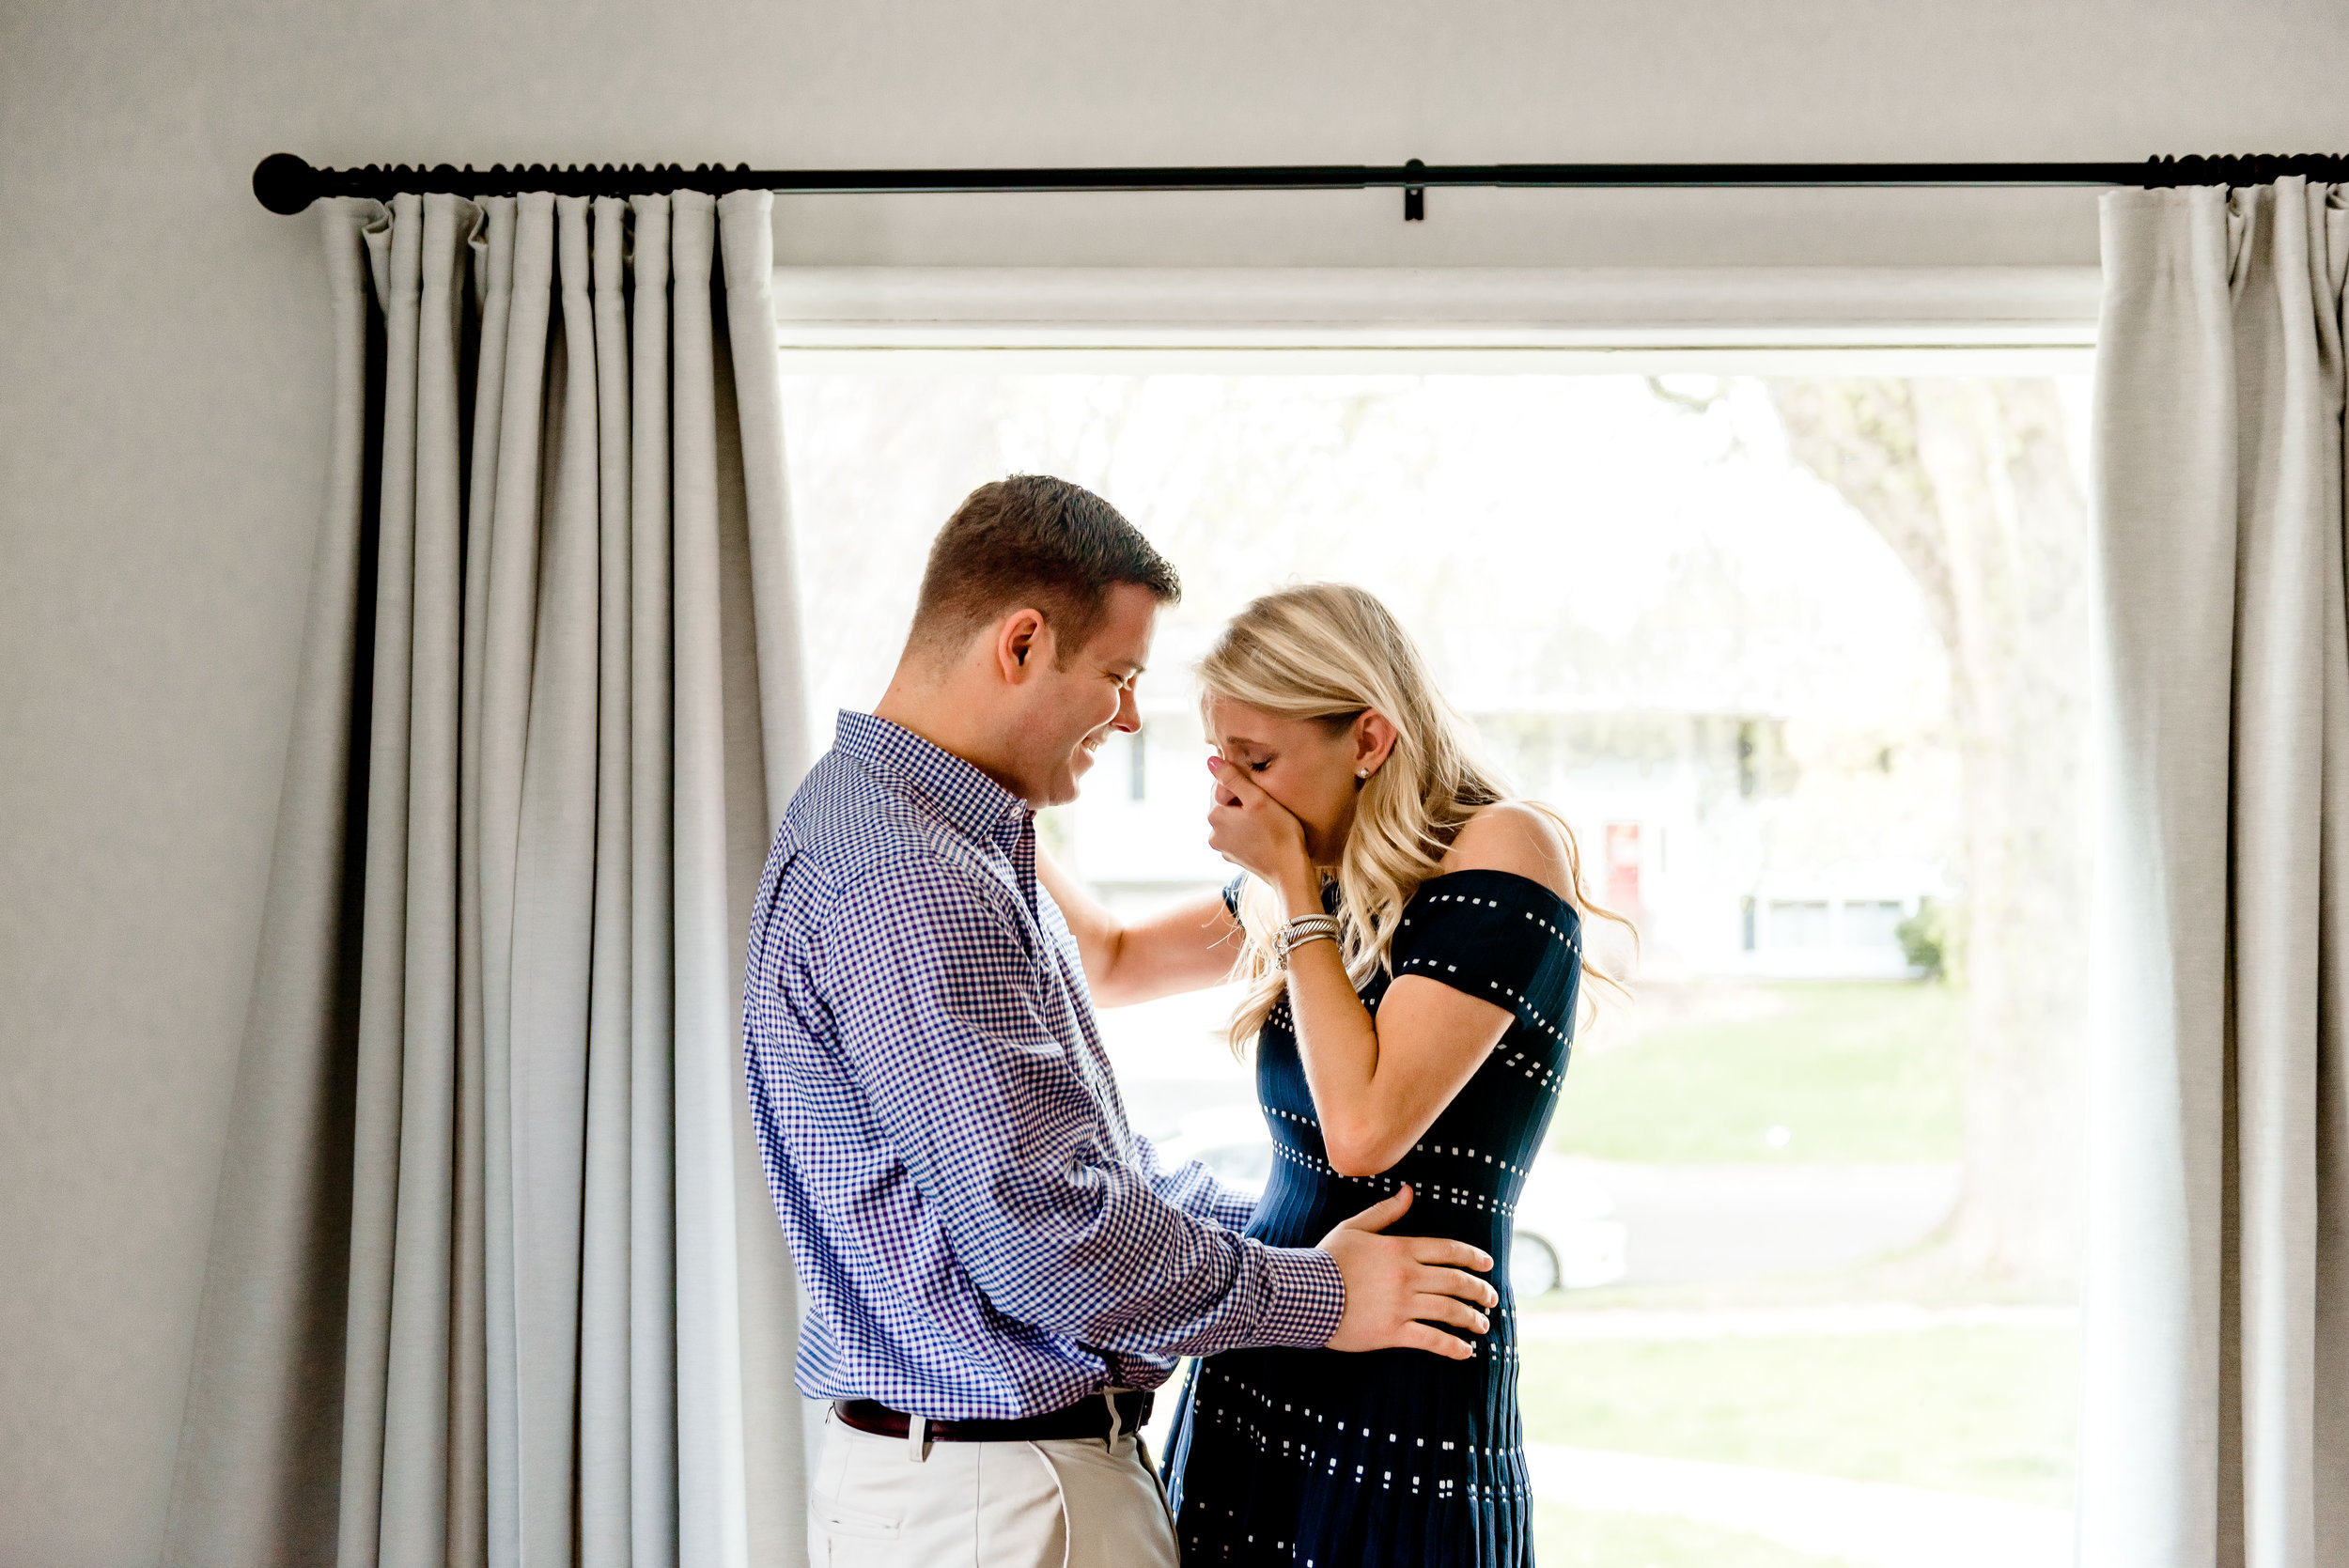 Professional Proposal Photographer in Minneapolis - Home Closing Proposal